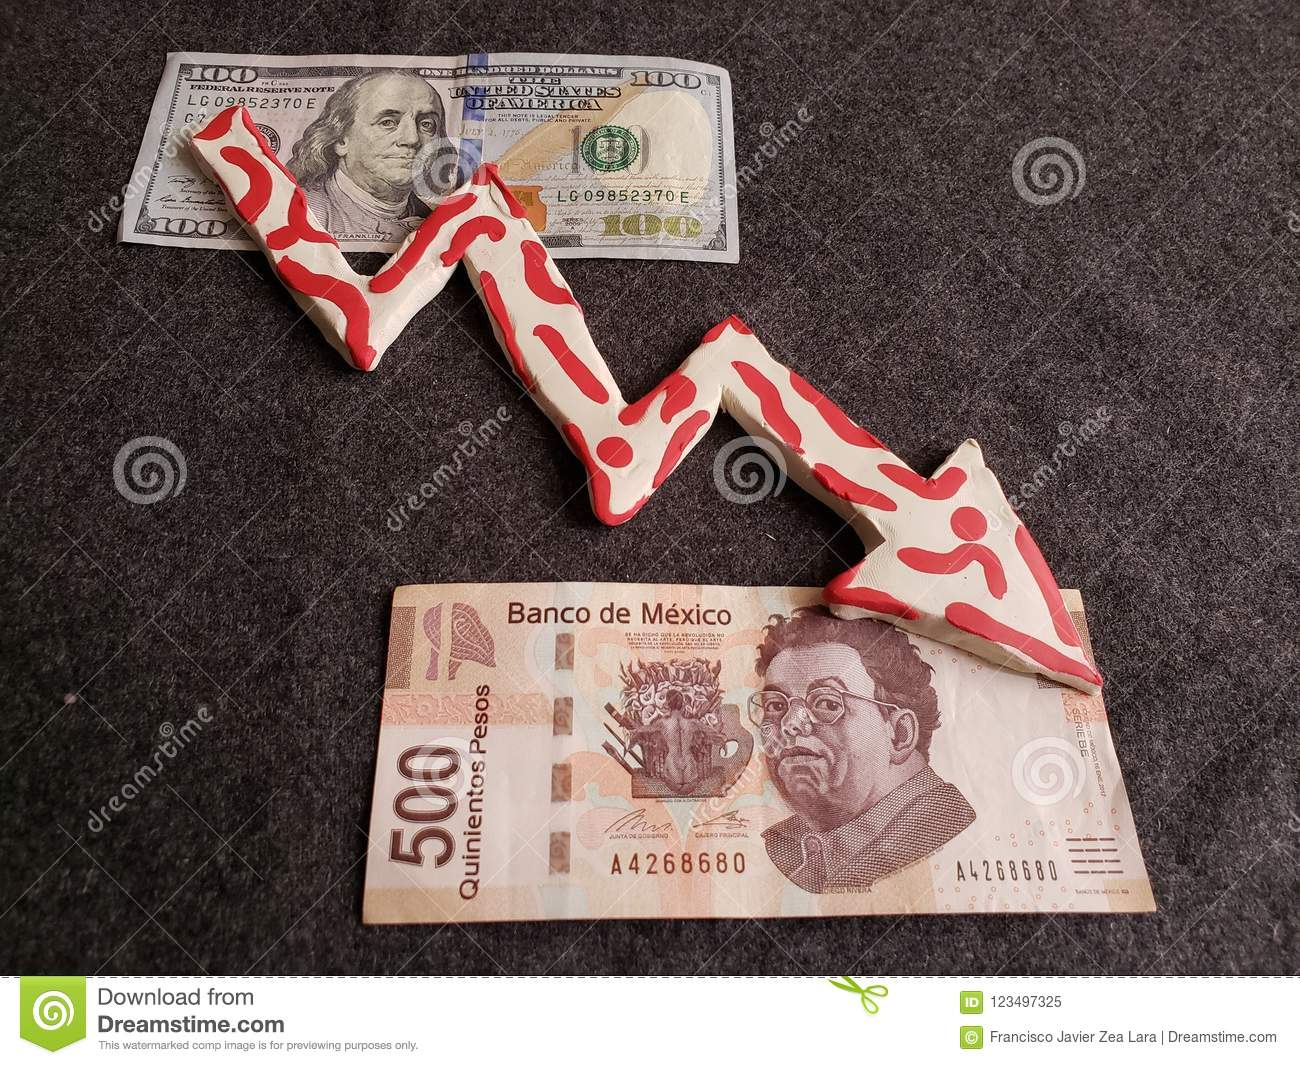 Backdrop For Announcements Of Trading And Exchange Bank And Commerce Background With Cash And Money Economy And Currency Paper